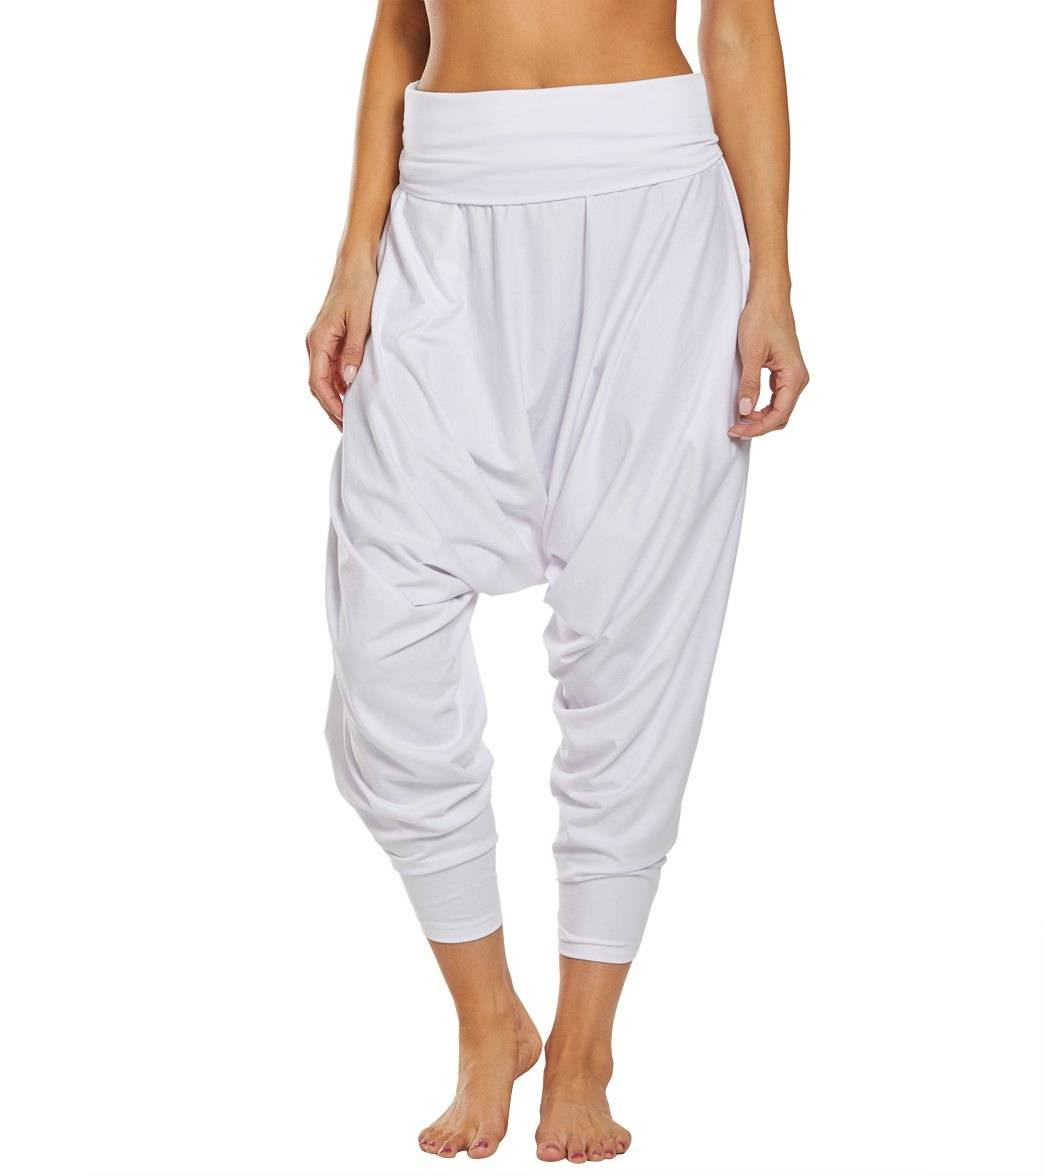 Buddha Pants Women's San Fran Organic Bamboo Harem - White Large Cotton